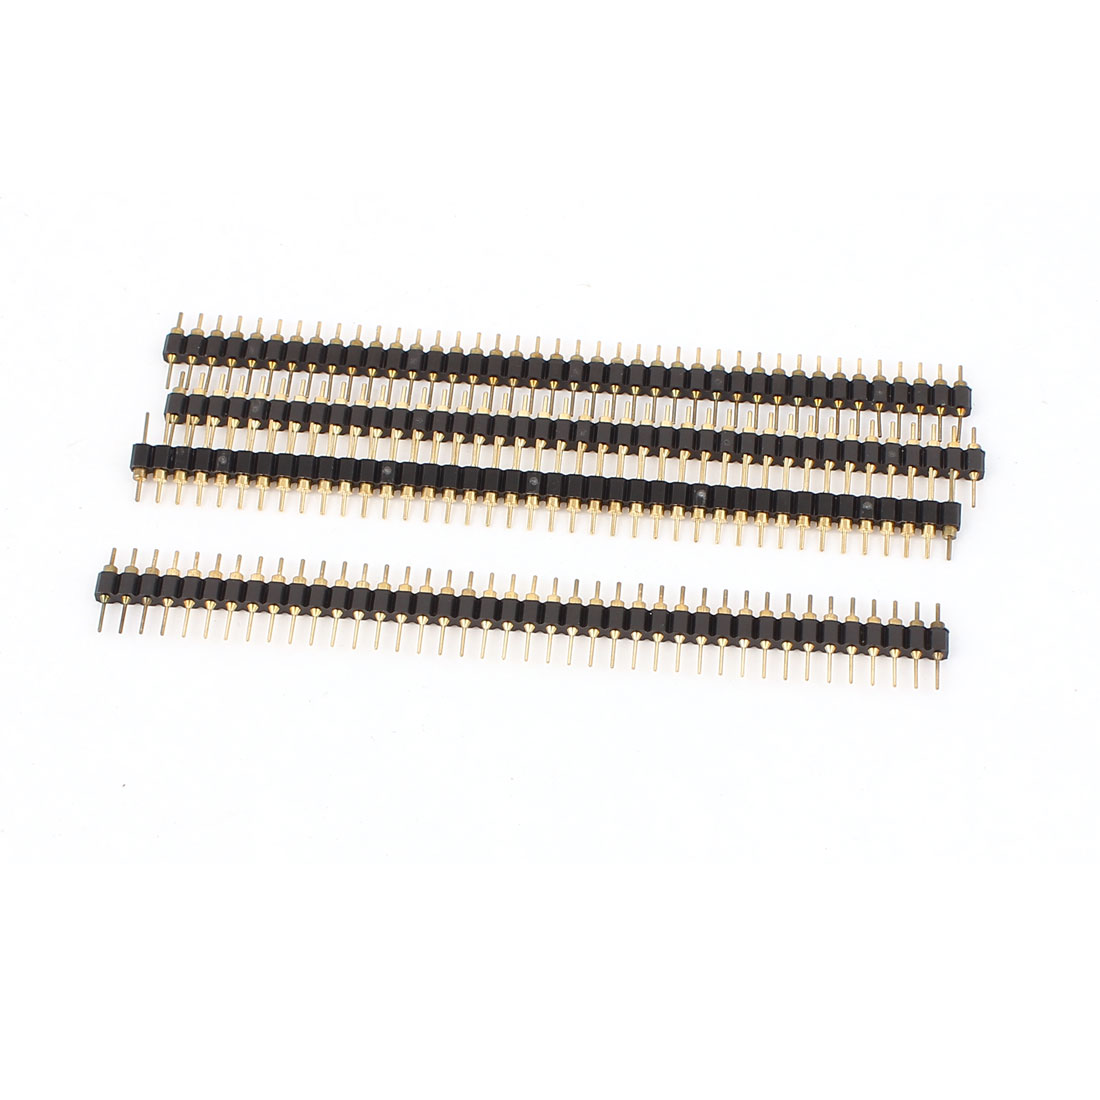 4pcs PBC Mount 40 Pin 2.5mm Pitch Breakable Straight Single Row Male Header Connector Strip